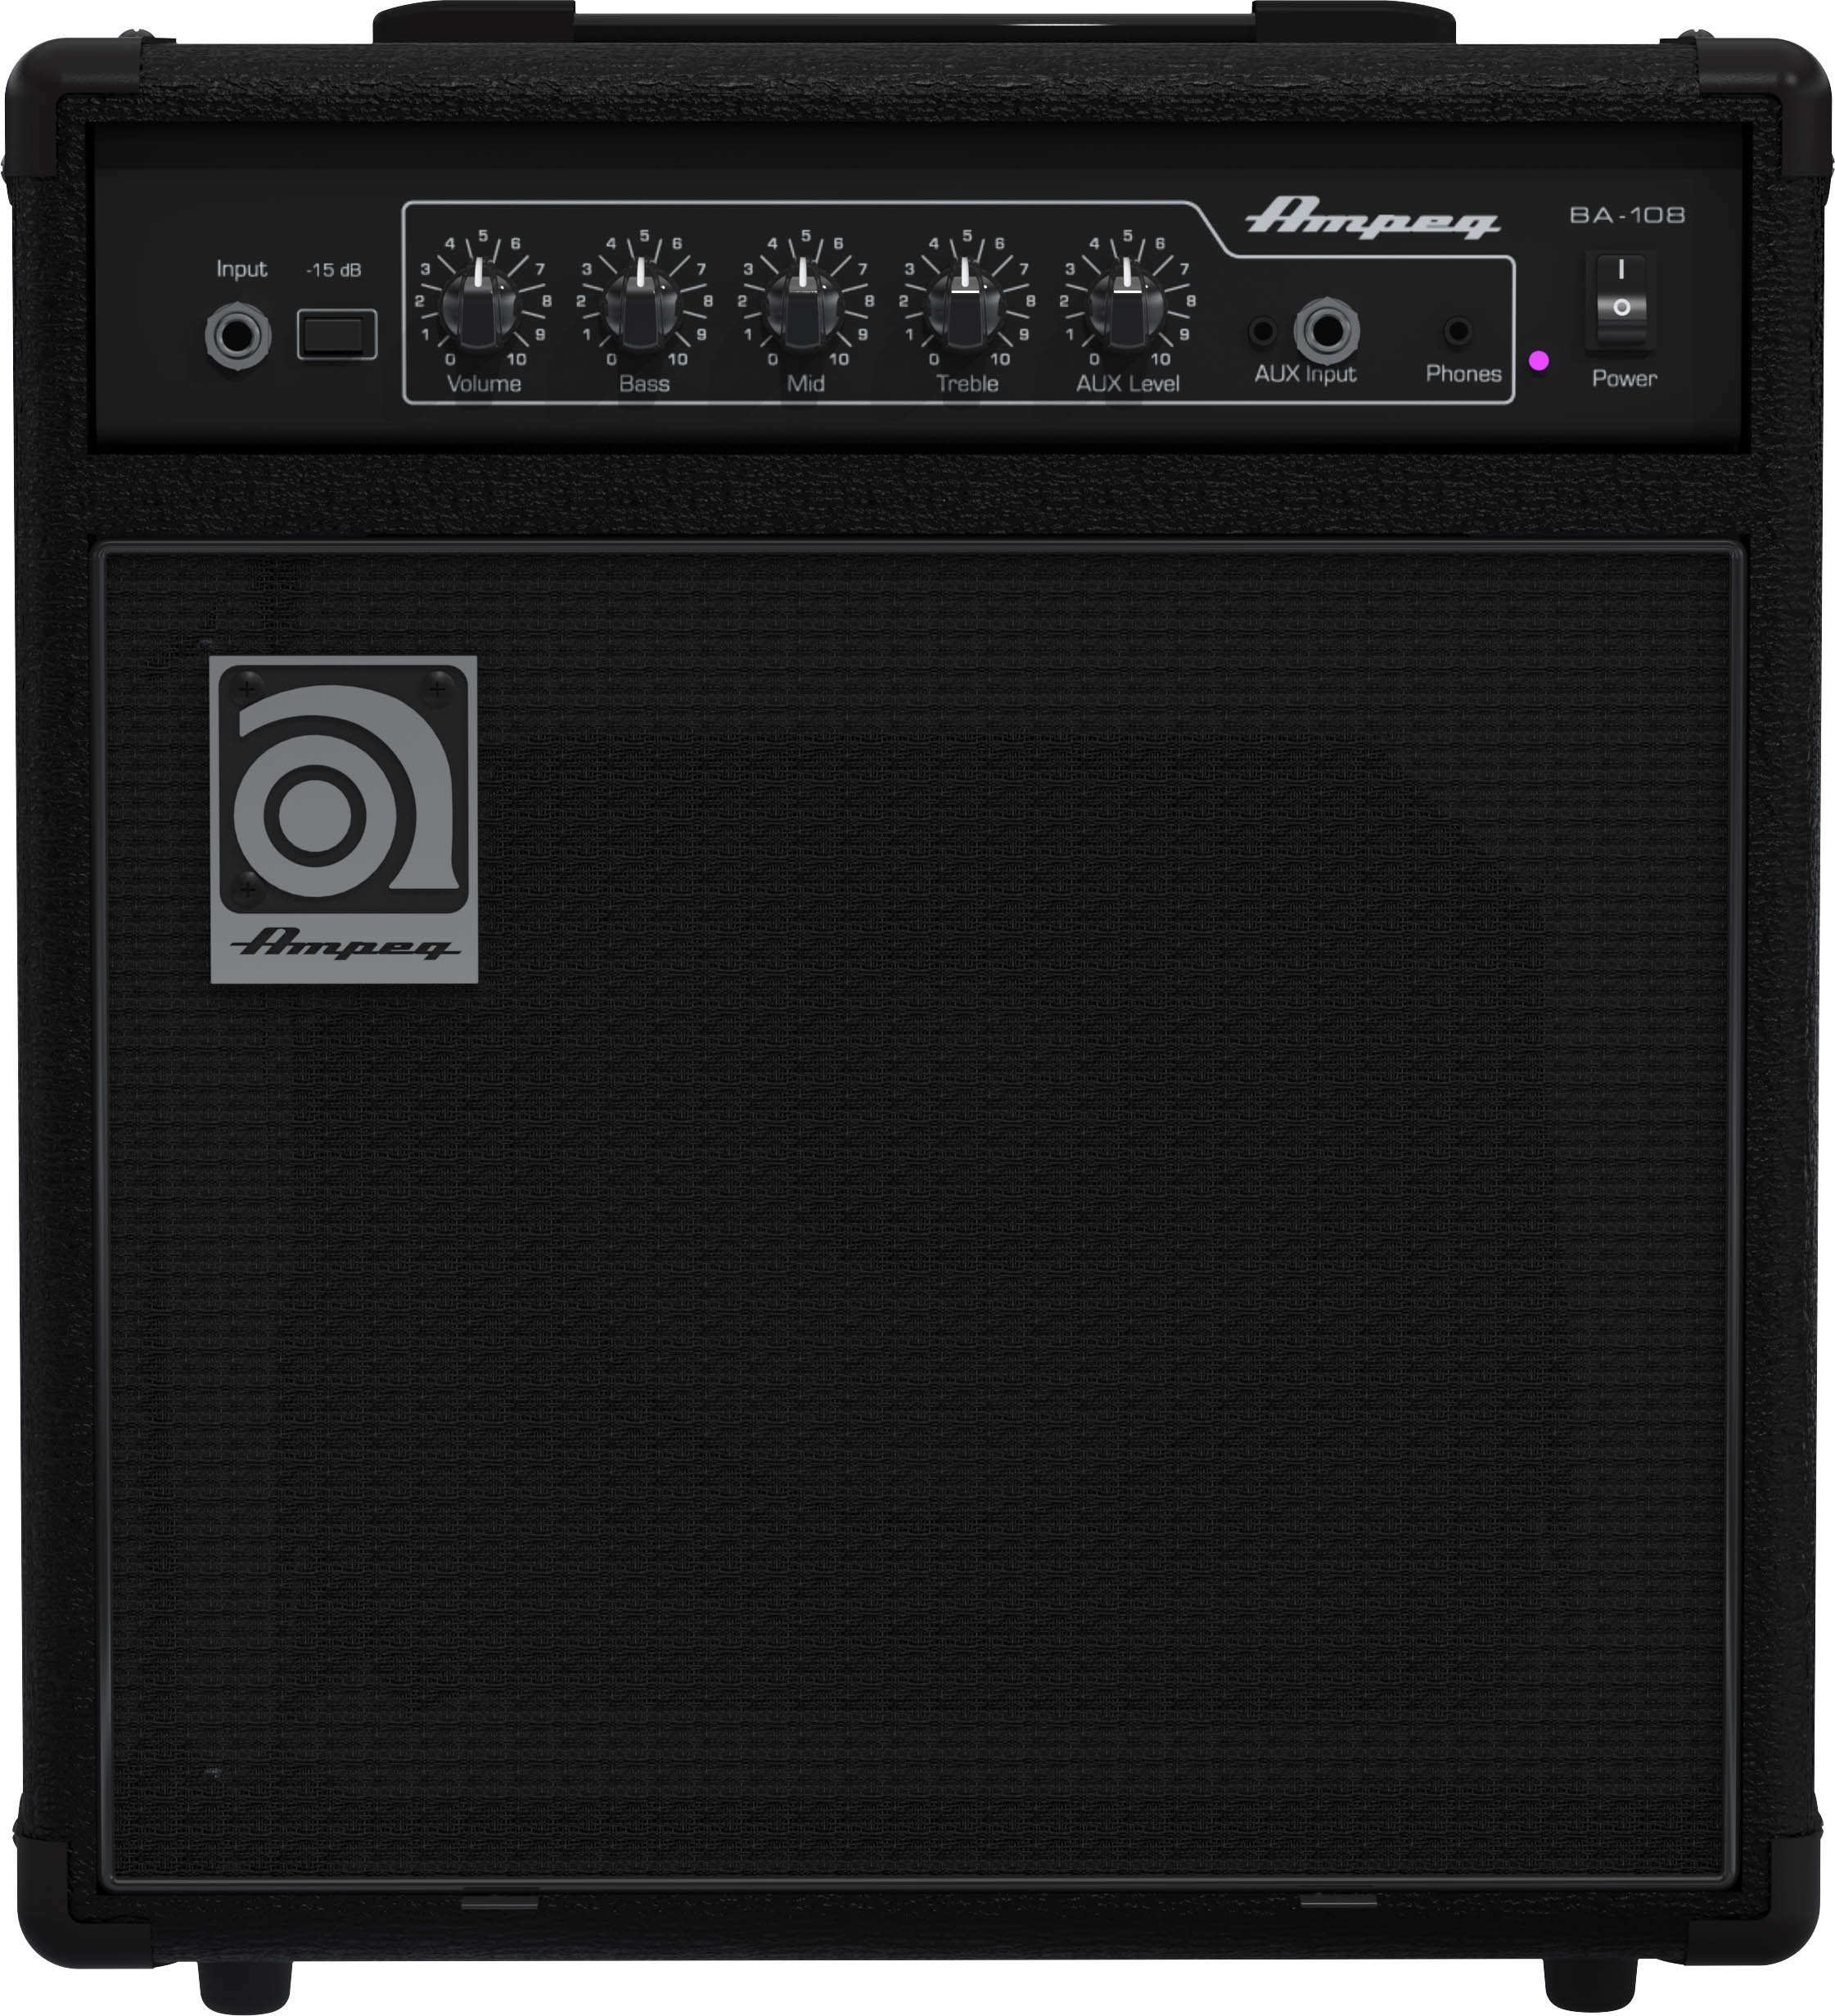 Ampeg Bass Combo Amplifier, Black, 20-watts (BA-108v2) by Ampeg